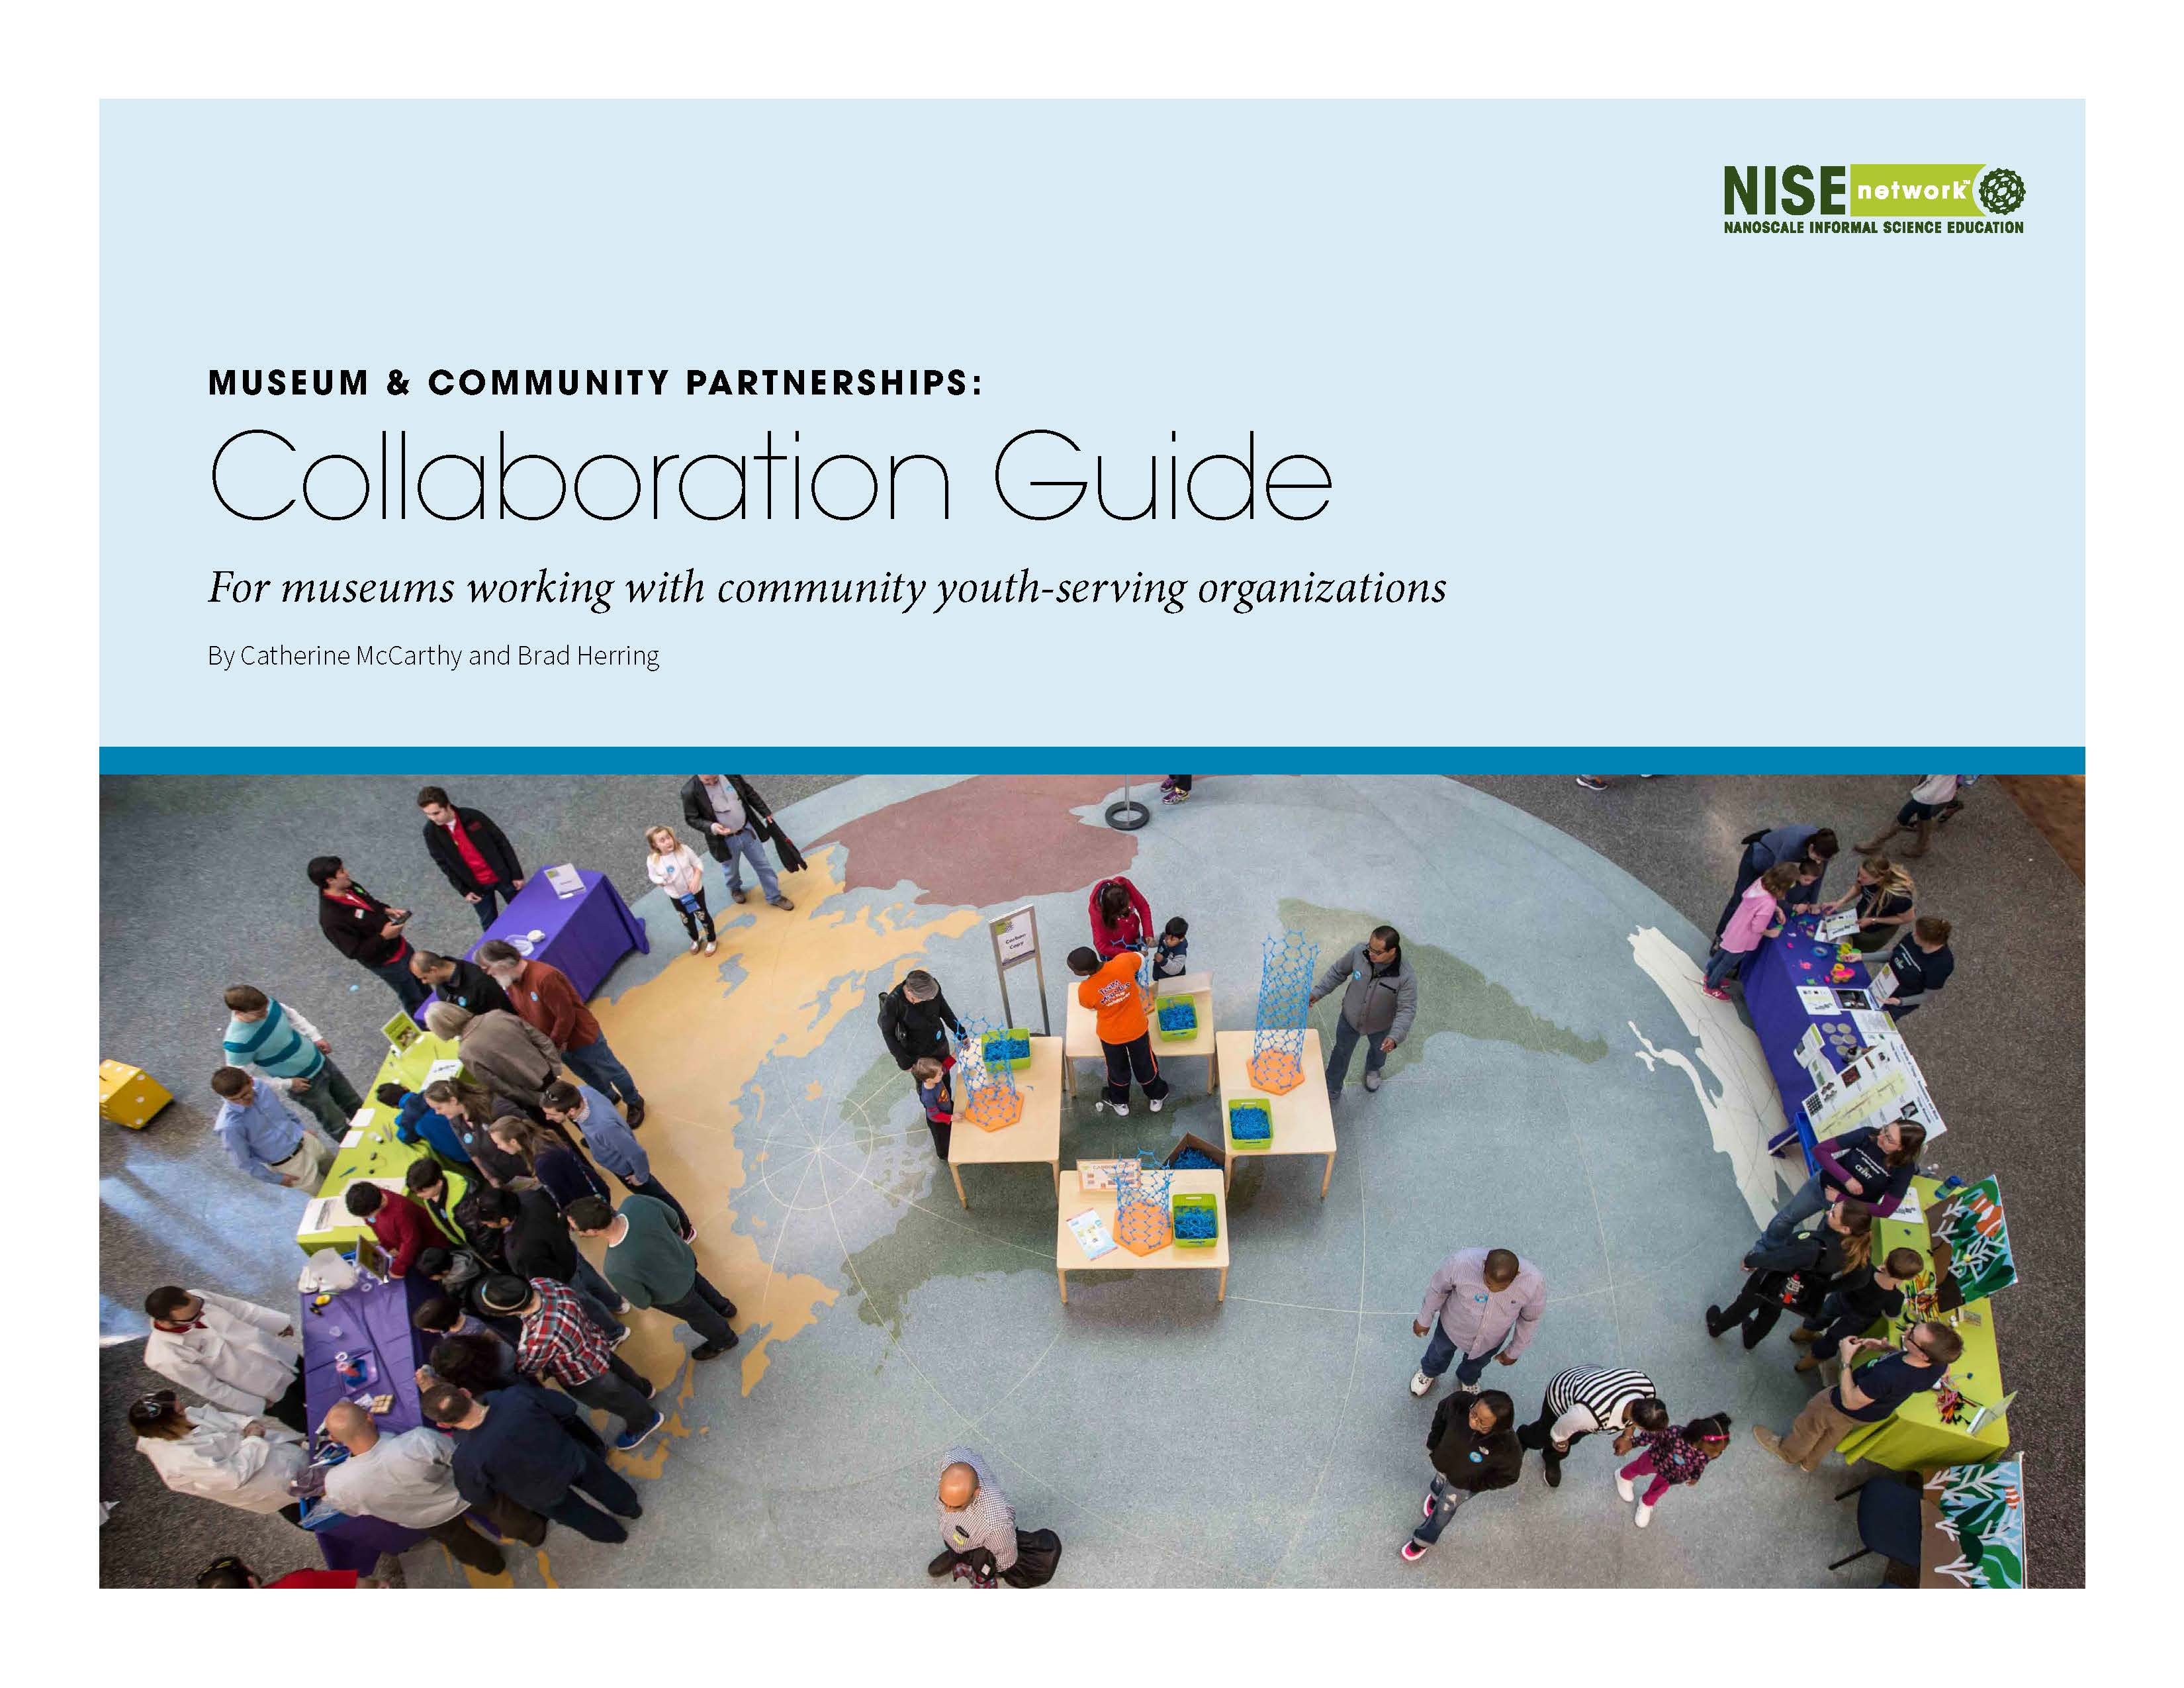 Collaboration Guide cover image